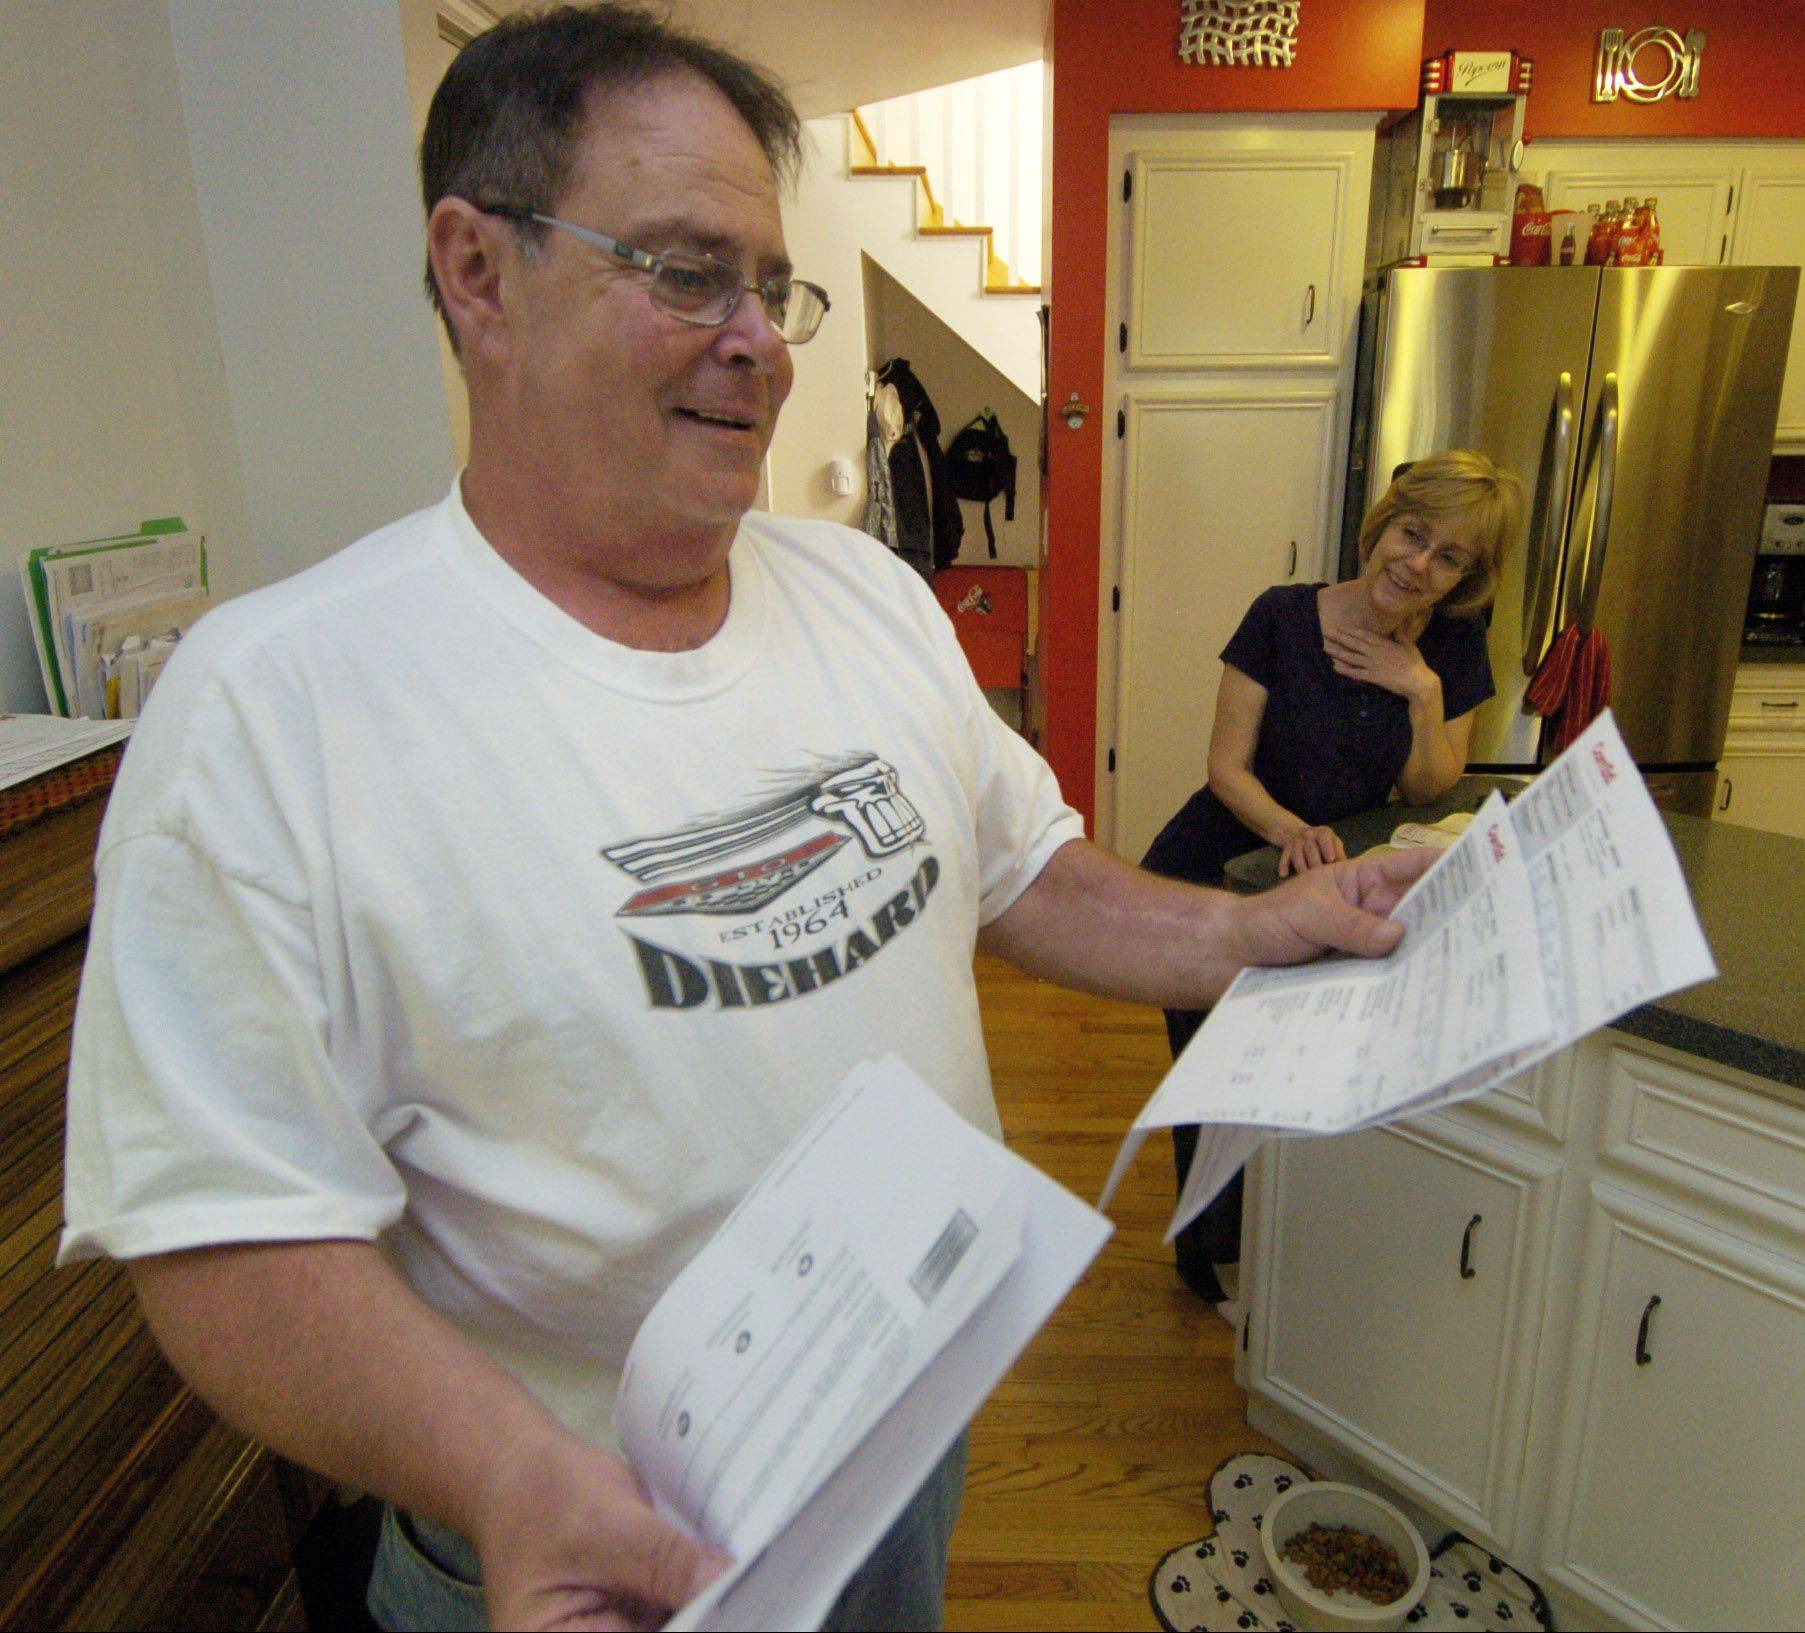 Eric Bogoff of Wheeling and his wife, Connie, are frustrated with ComEd's billing procedures and they are considering switching to an alternate provider of electricity.